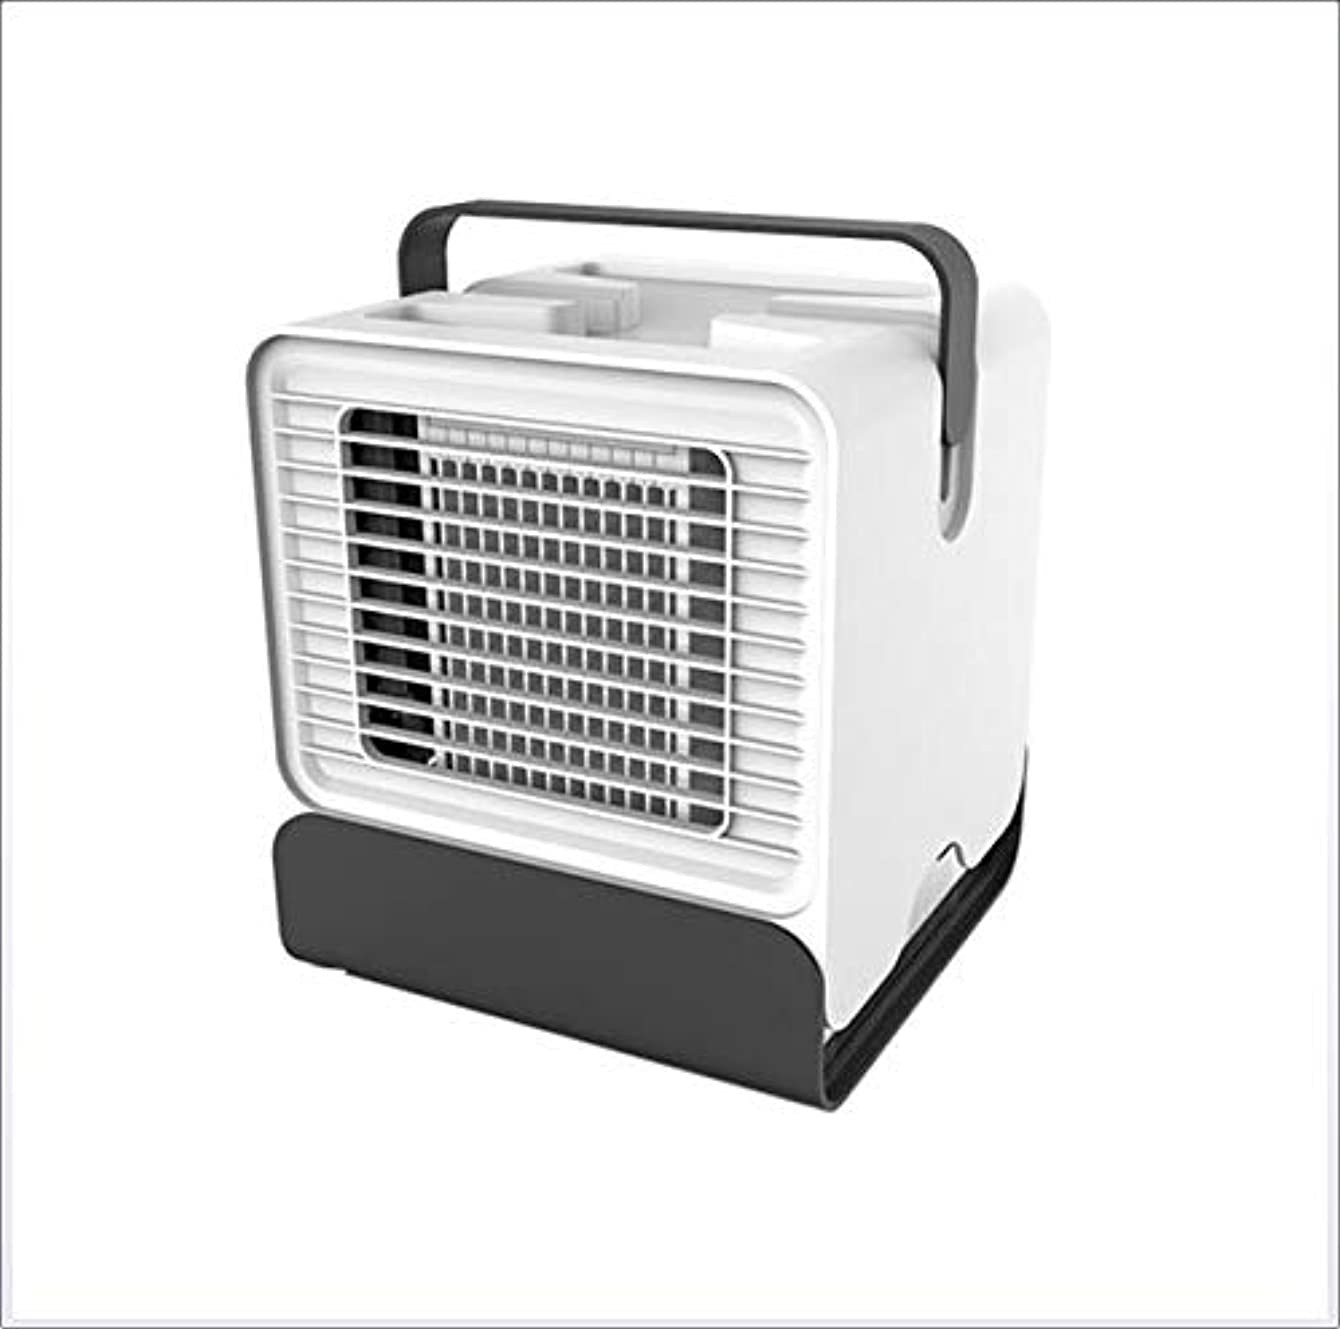 DJG Portable Air Conditioning Fan, Air Cooler, Personal Air Cooler, USB Desktop Mini Cooling Fan, Evaporative Cooler, Suitable for Office, Indoor, Outdoor